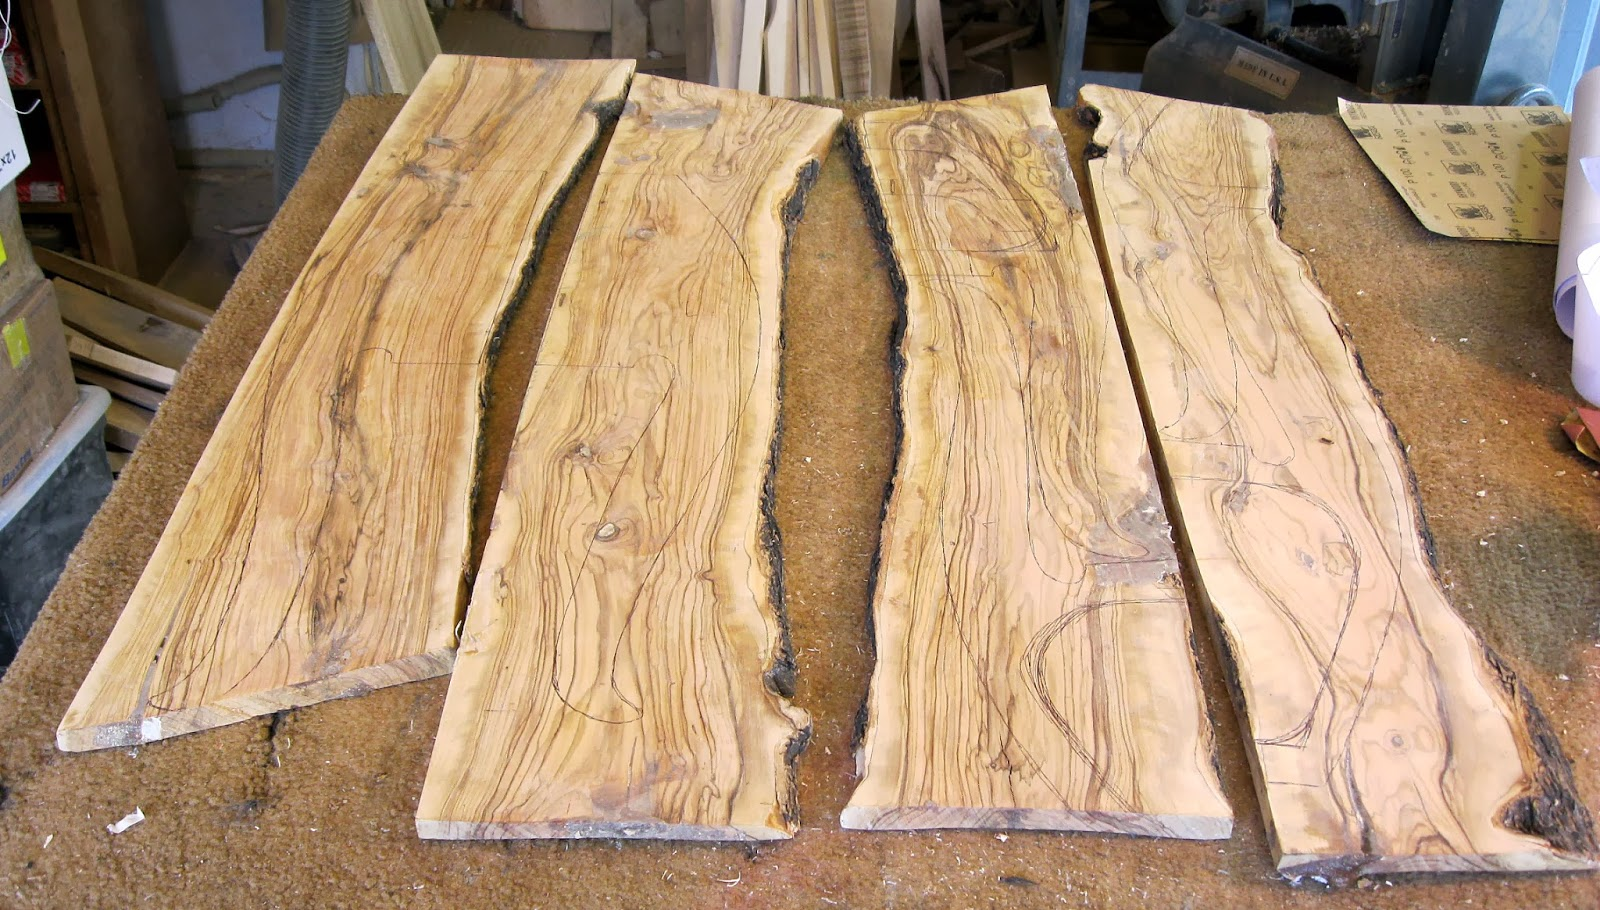 Wild Olivewood 2 X 12 Inches Partially Dry Has Been Drying With Wax On For Over Two Years 21 50